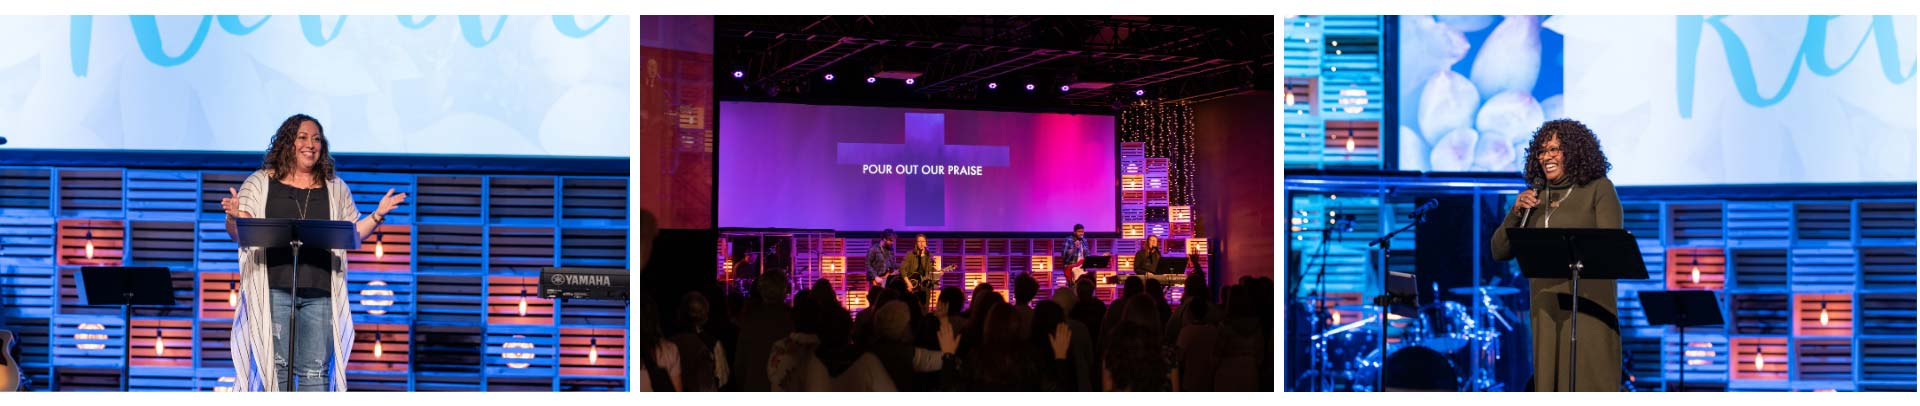 Revive Women's Conference - Beloved - 2021, Newberg Oregon Based - Virtual Attendance Available Nation Wide